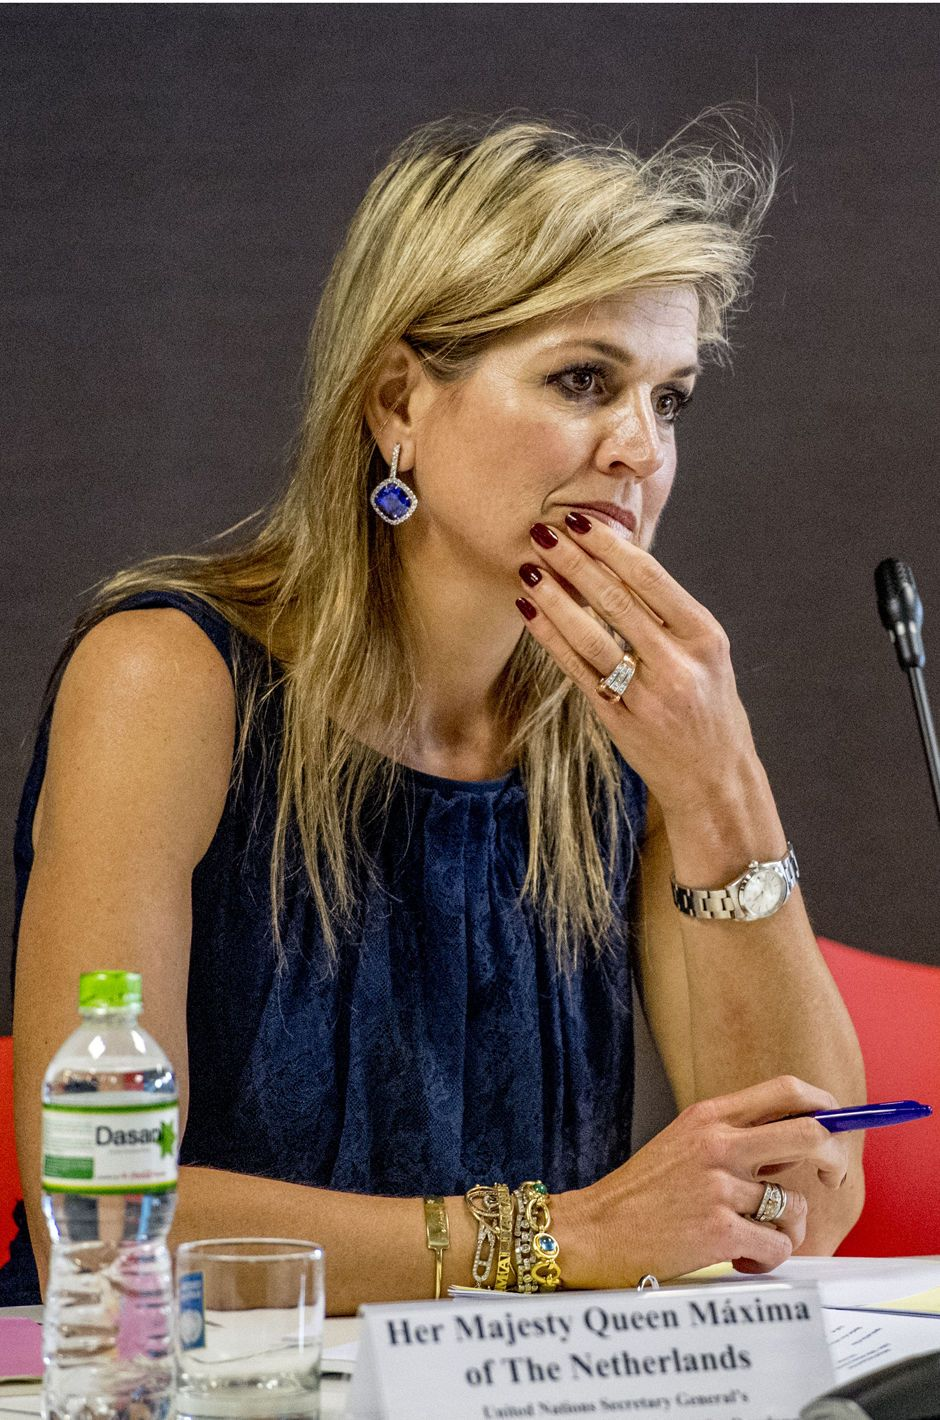 Queen Maxima of the Netherlands attend the UN briefing with international partners on May 31, 2017 in Hanoi, Vietnam. Queen Maxima is in Vietnam for an three day visit in her capacity as United Nation's Secretary-Generals Special Advocate for Inclusive Finance for Development.